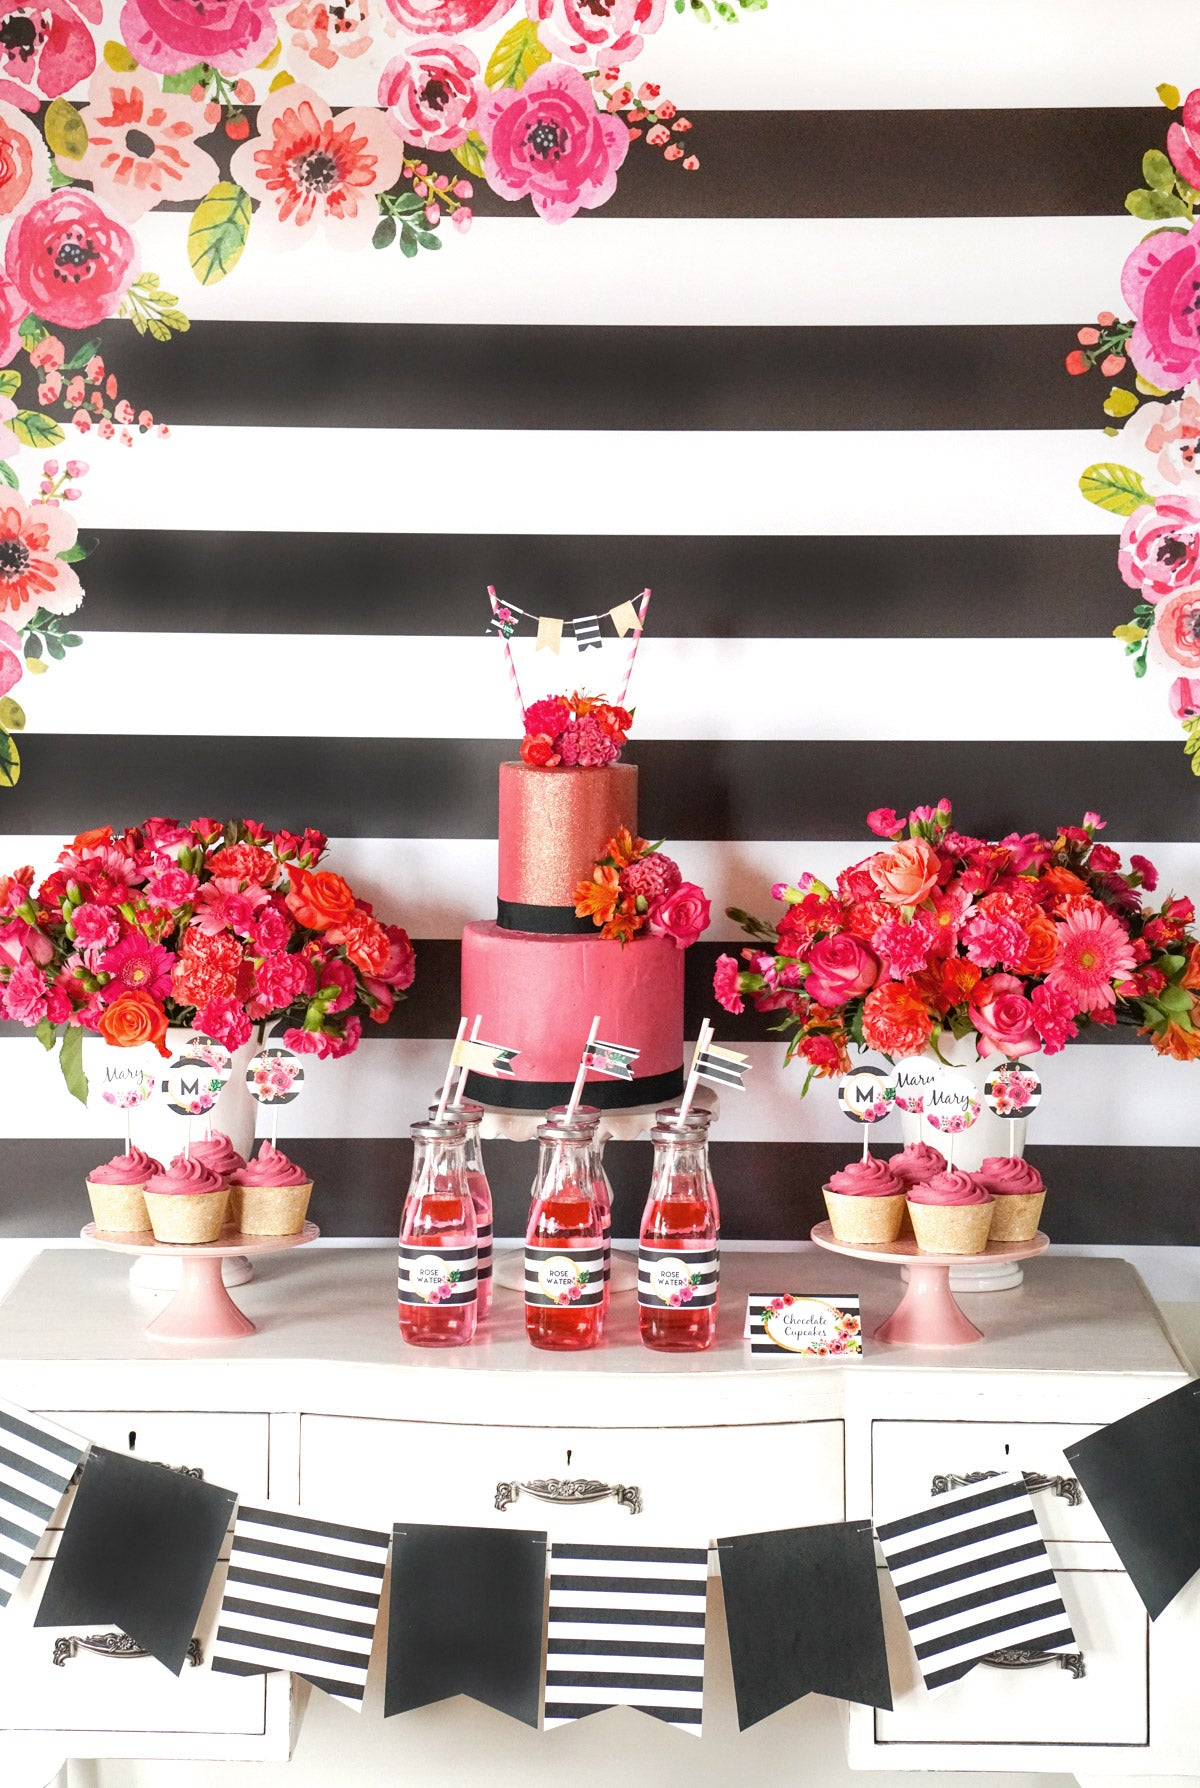 Black And White Striped Watercolor Floral Dessert Table Set-Up